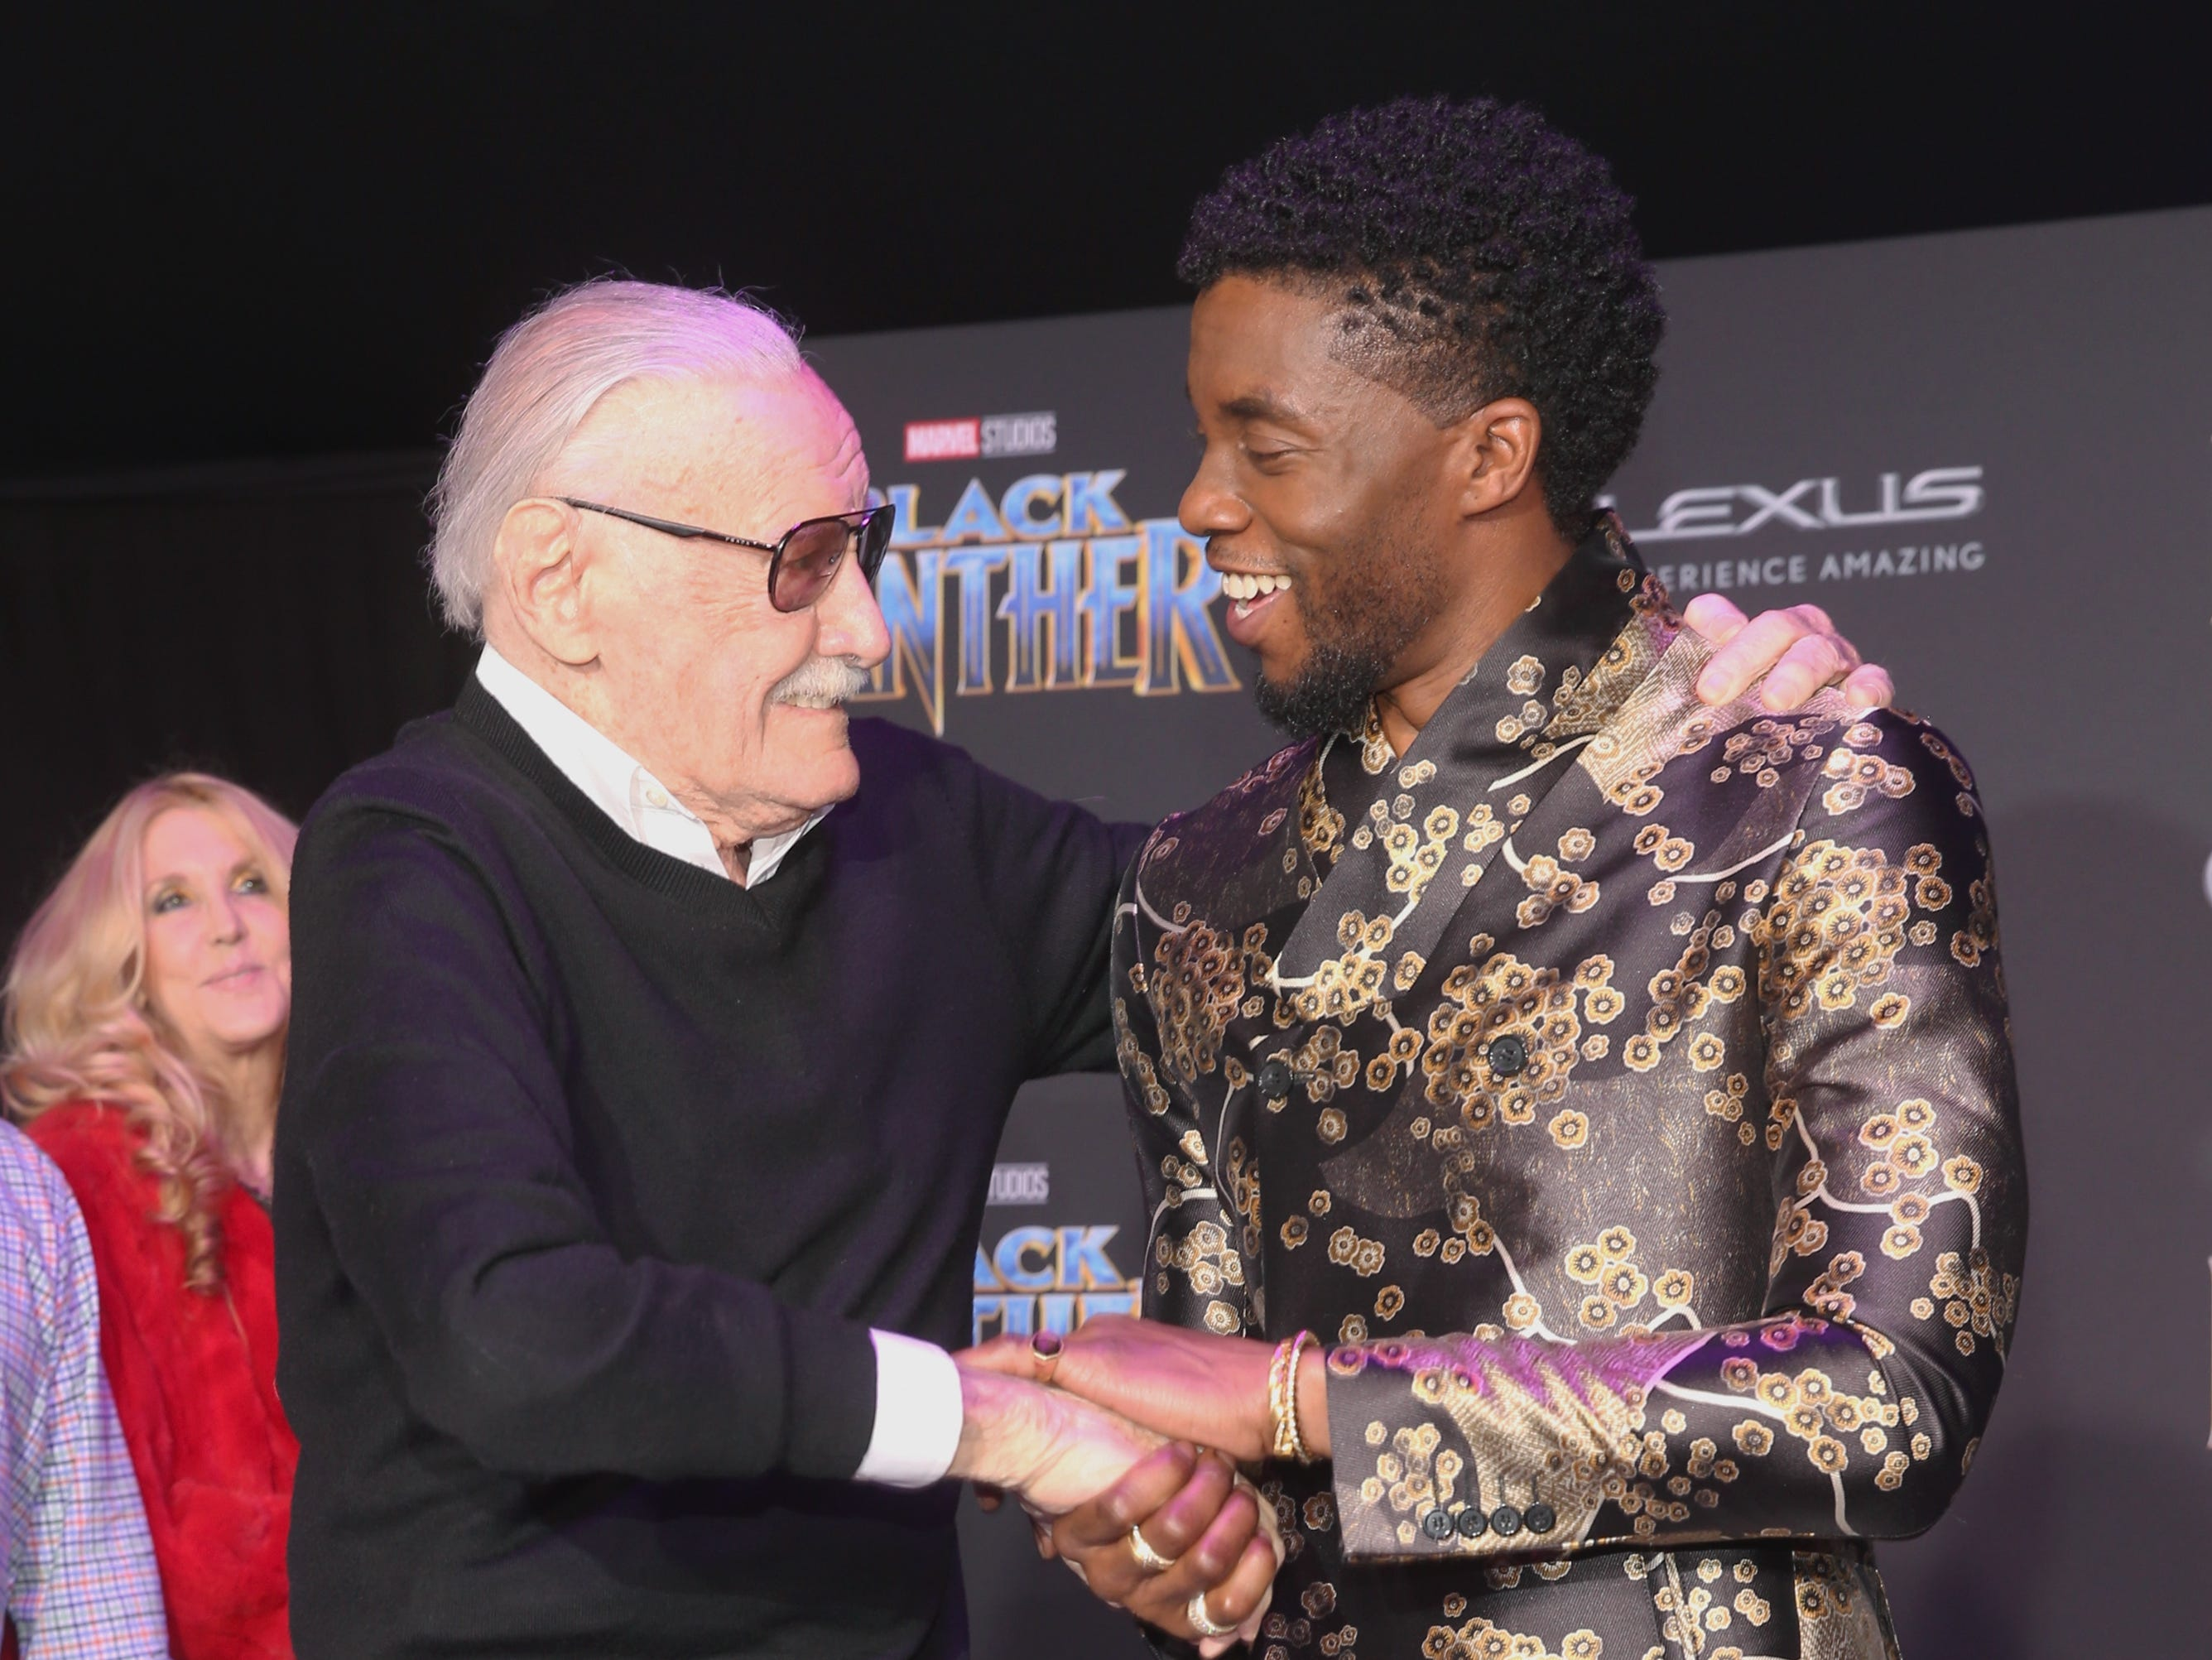 """Jan. 29: Marvel mastermind Stan Lee, who died Nov. 12, poses with """"Black Panther"""" star Chadwick Boseman at the film's world premiere in Hollywood."""